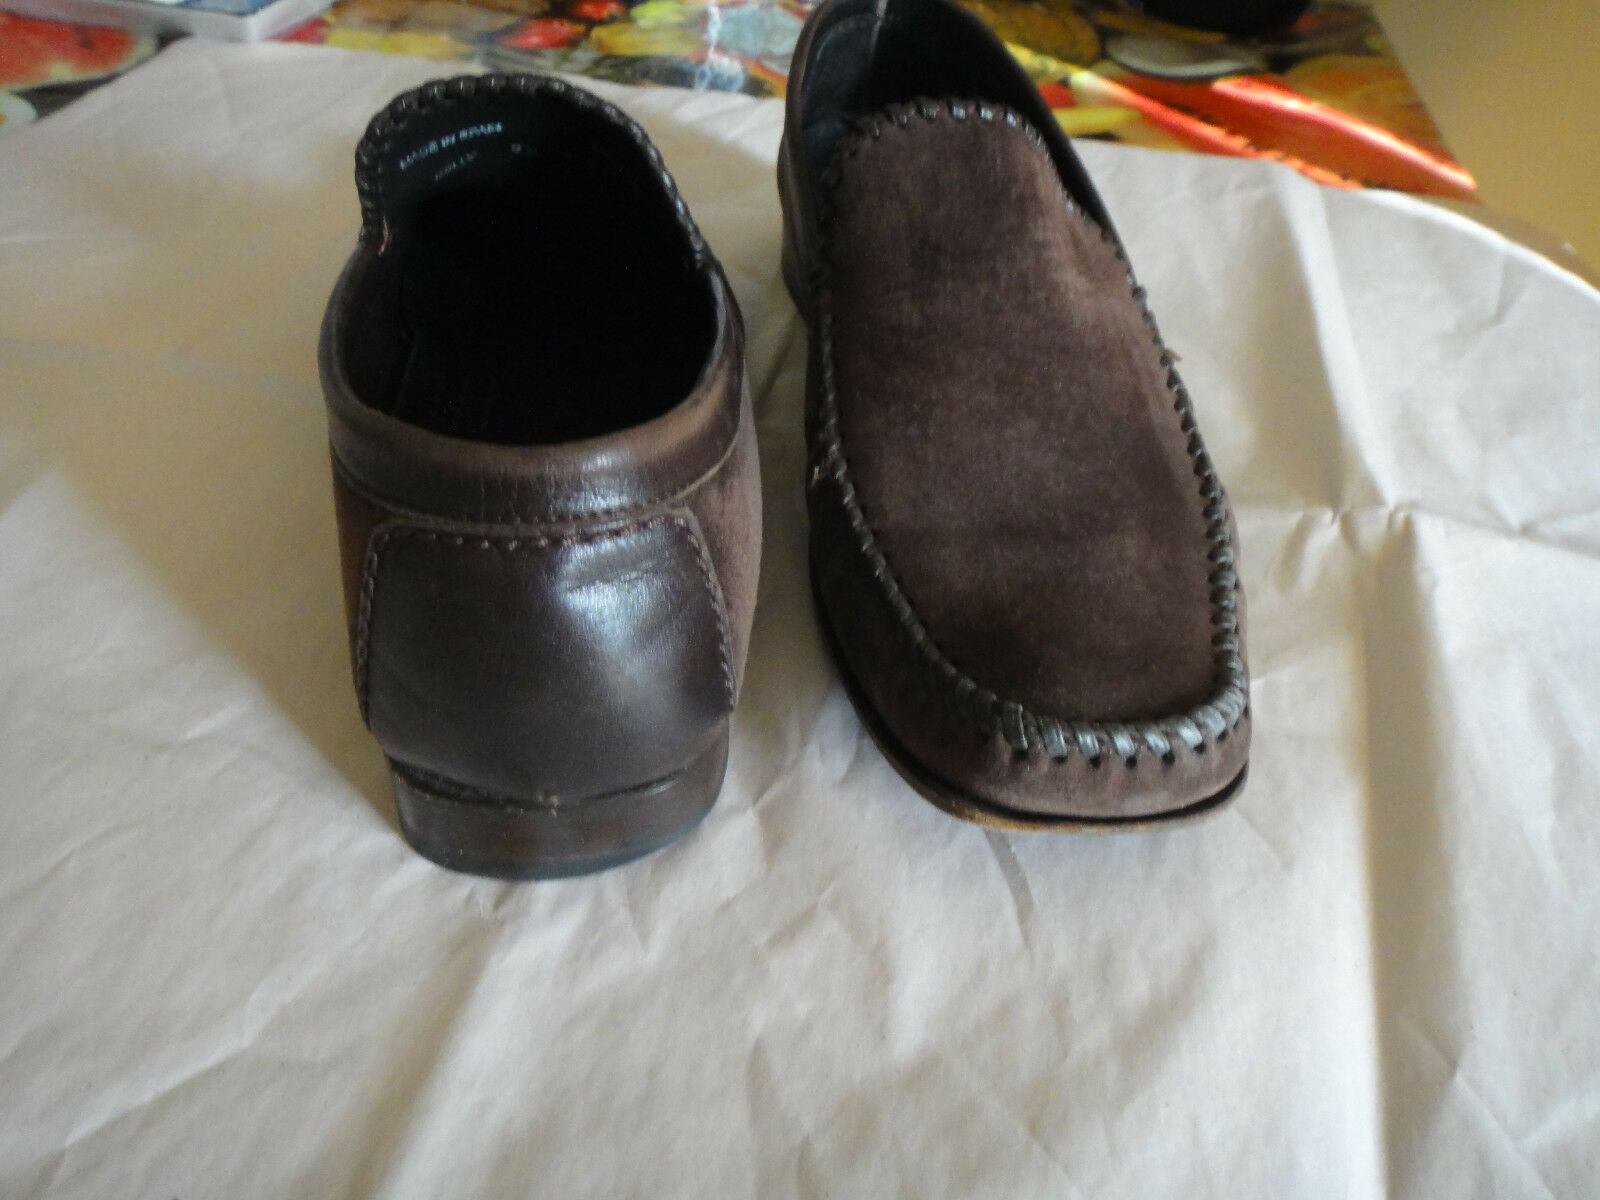 MEZLAN  KELLY BROWN SUEDE MOCCASIN MOCCASIN MOCCASIN SIZE 9.5M bba4de